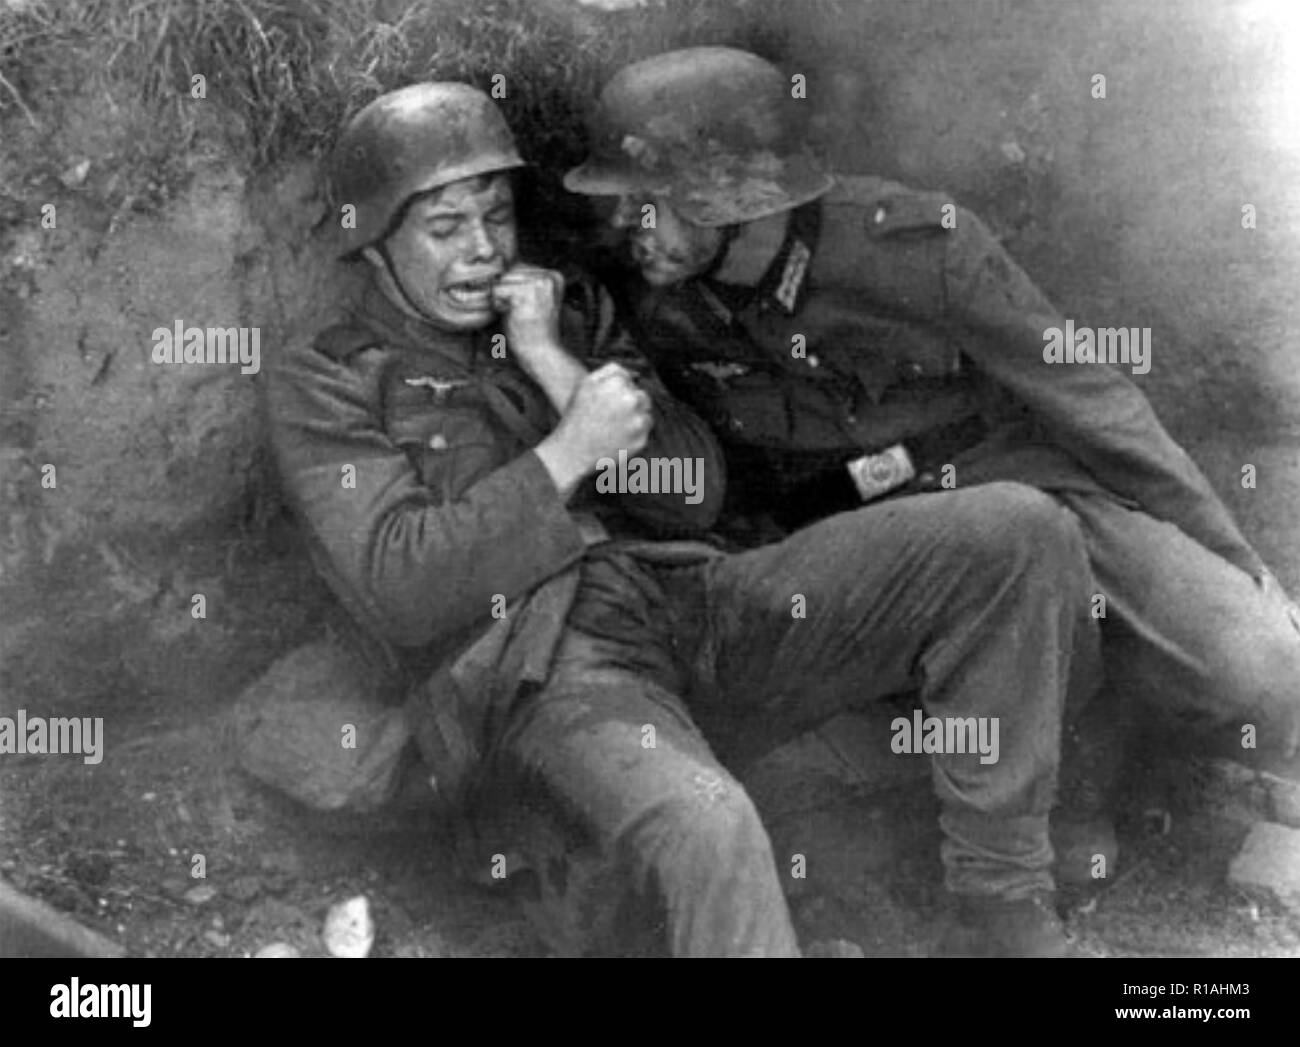 WW1: shell shocked German soldier. Details  unknown. - Stock Image